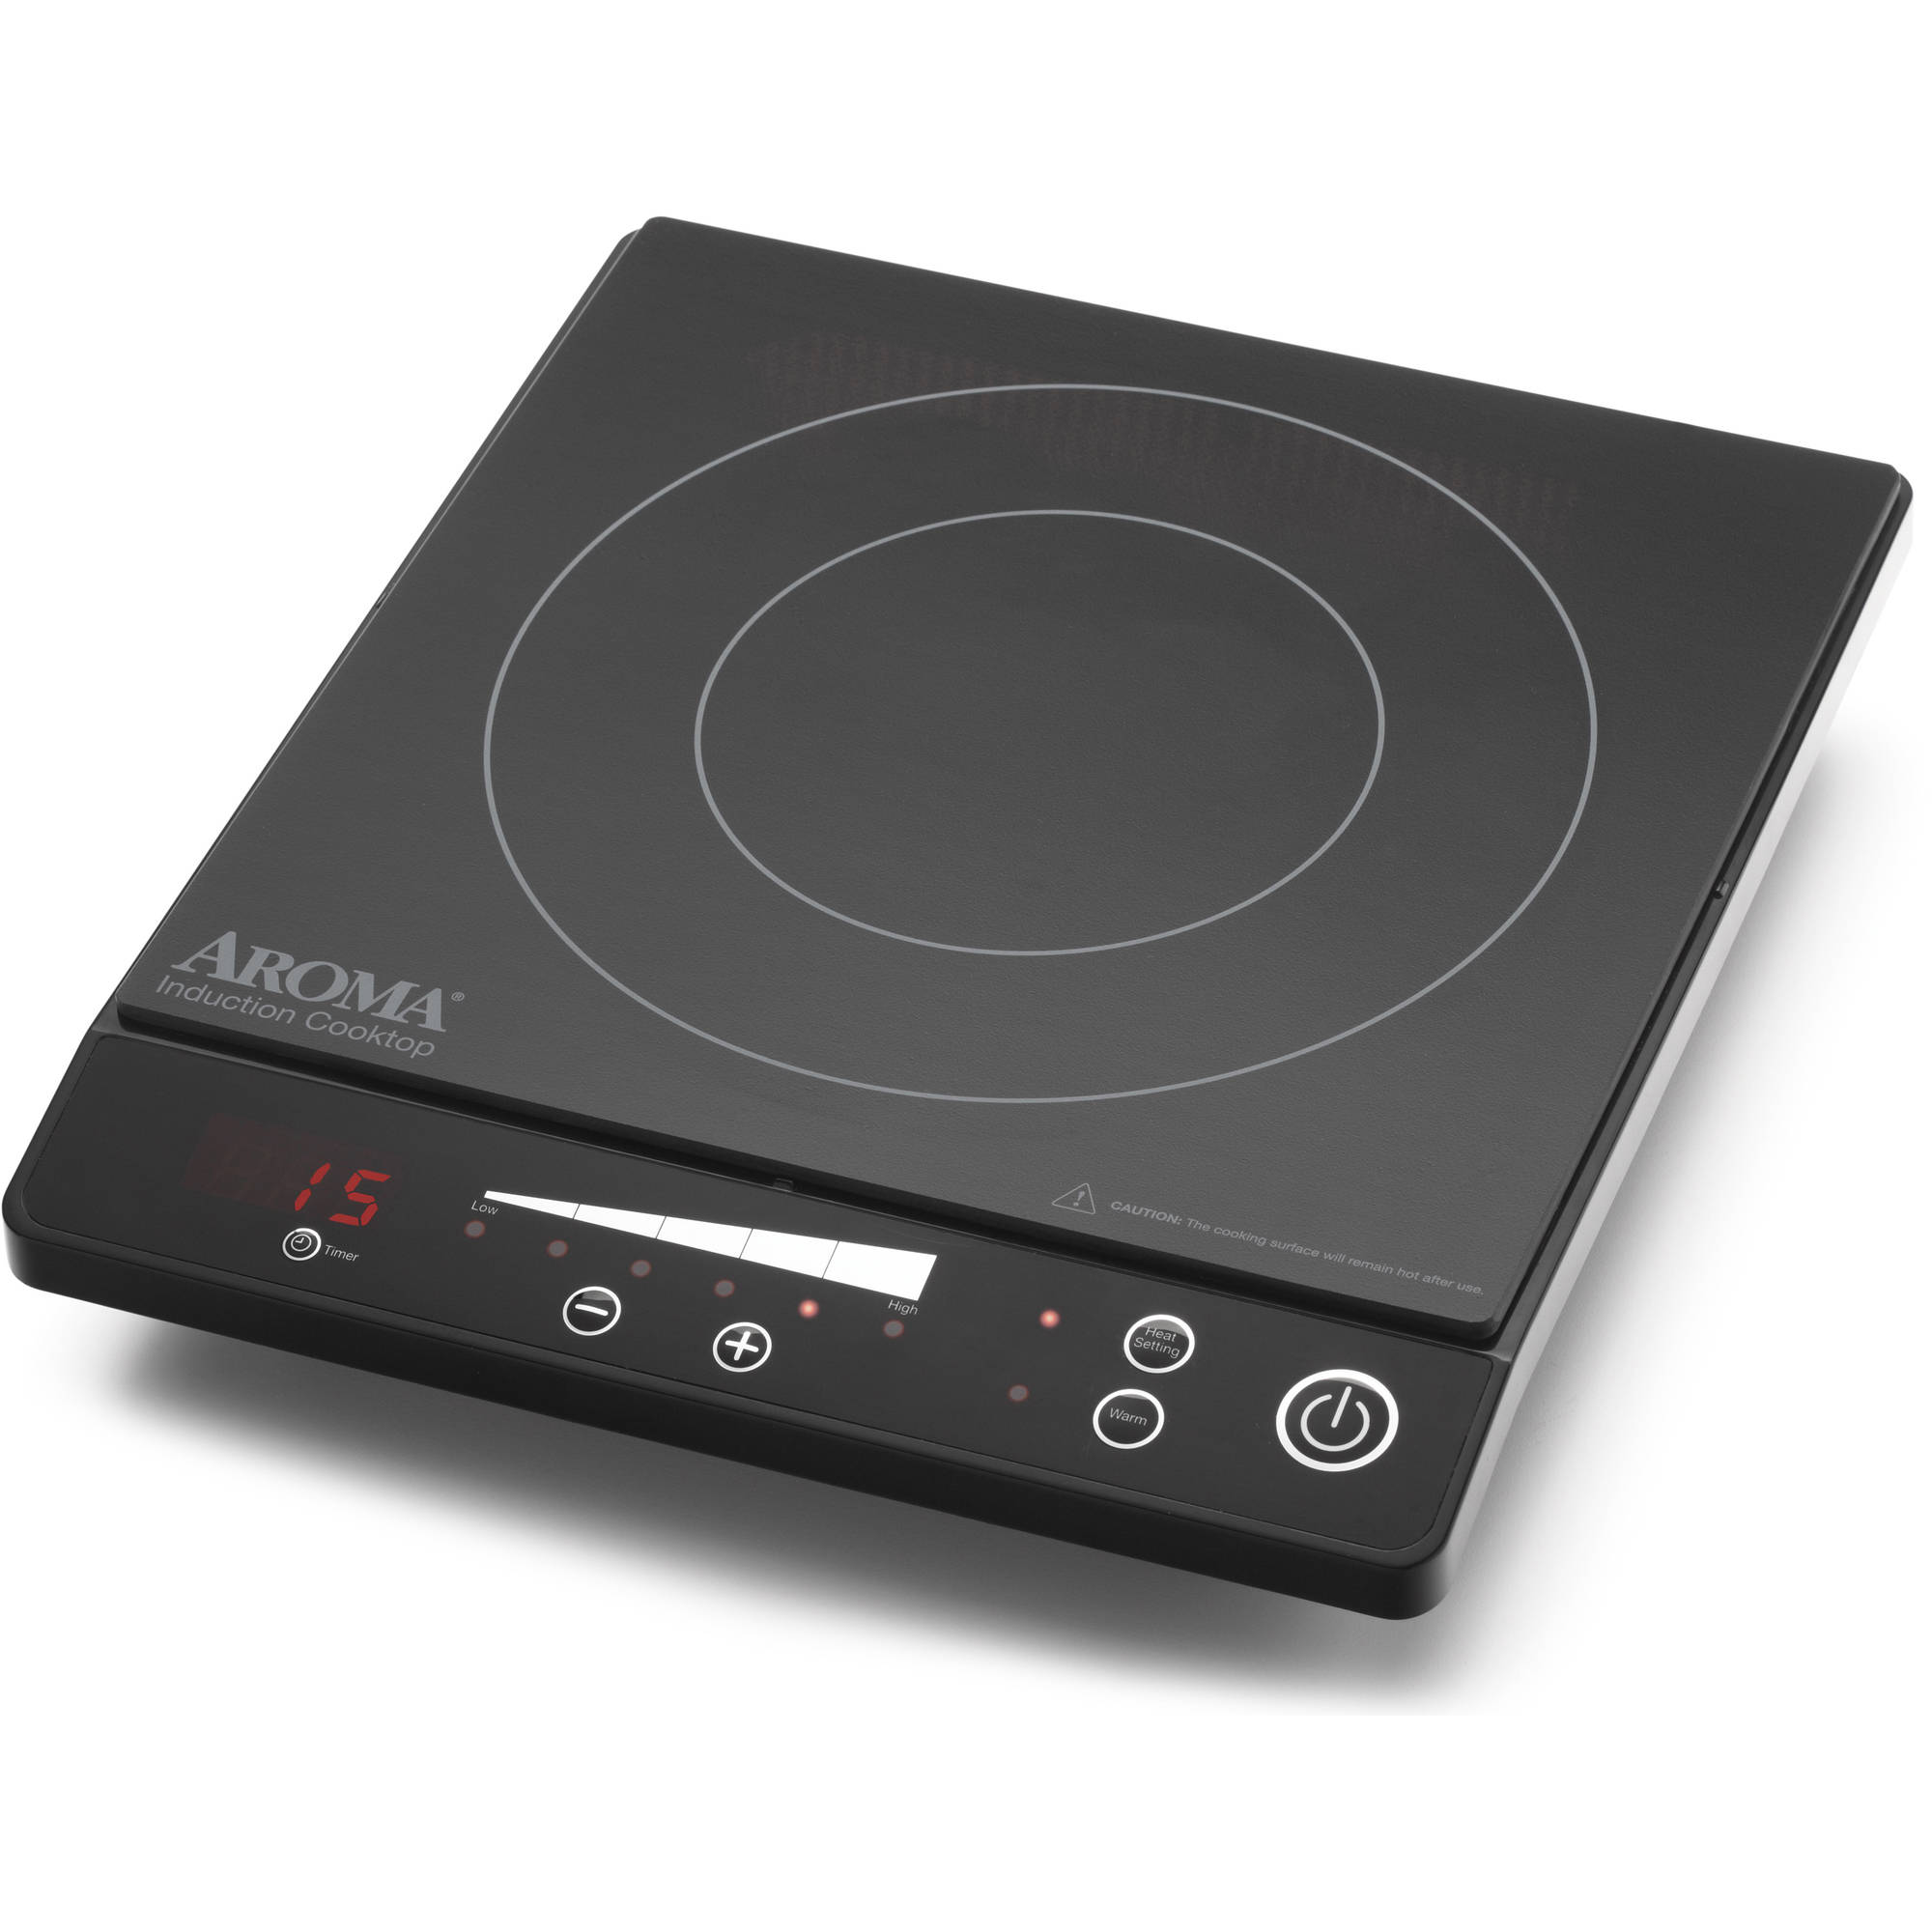 Aroma Digital Induction Cooktop